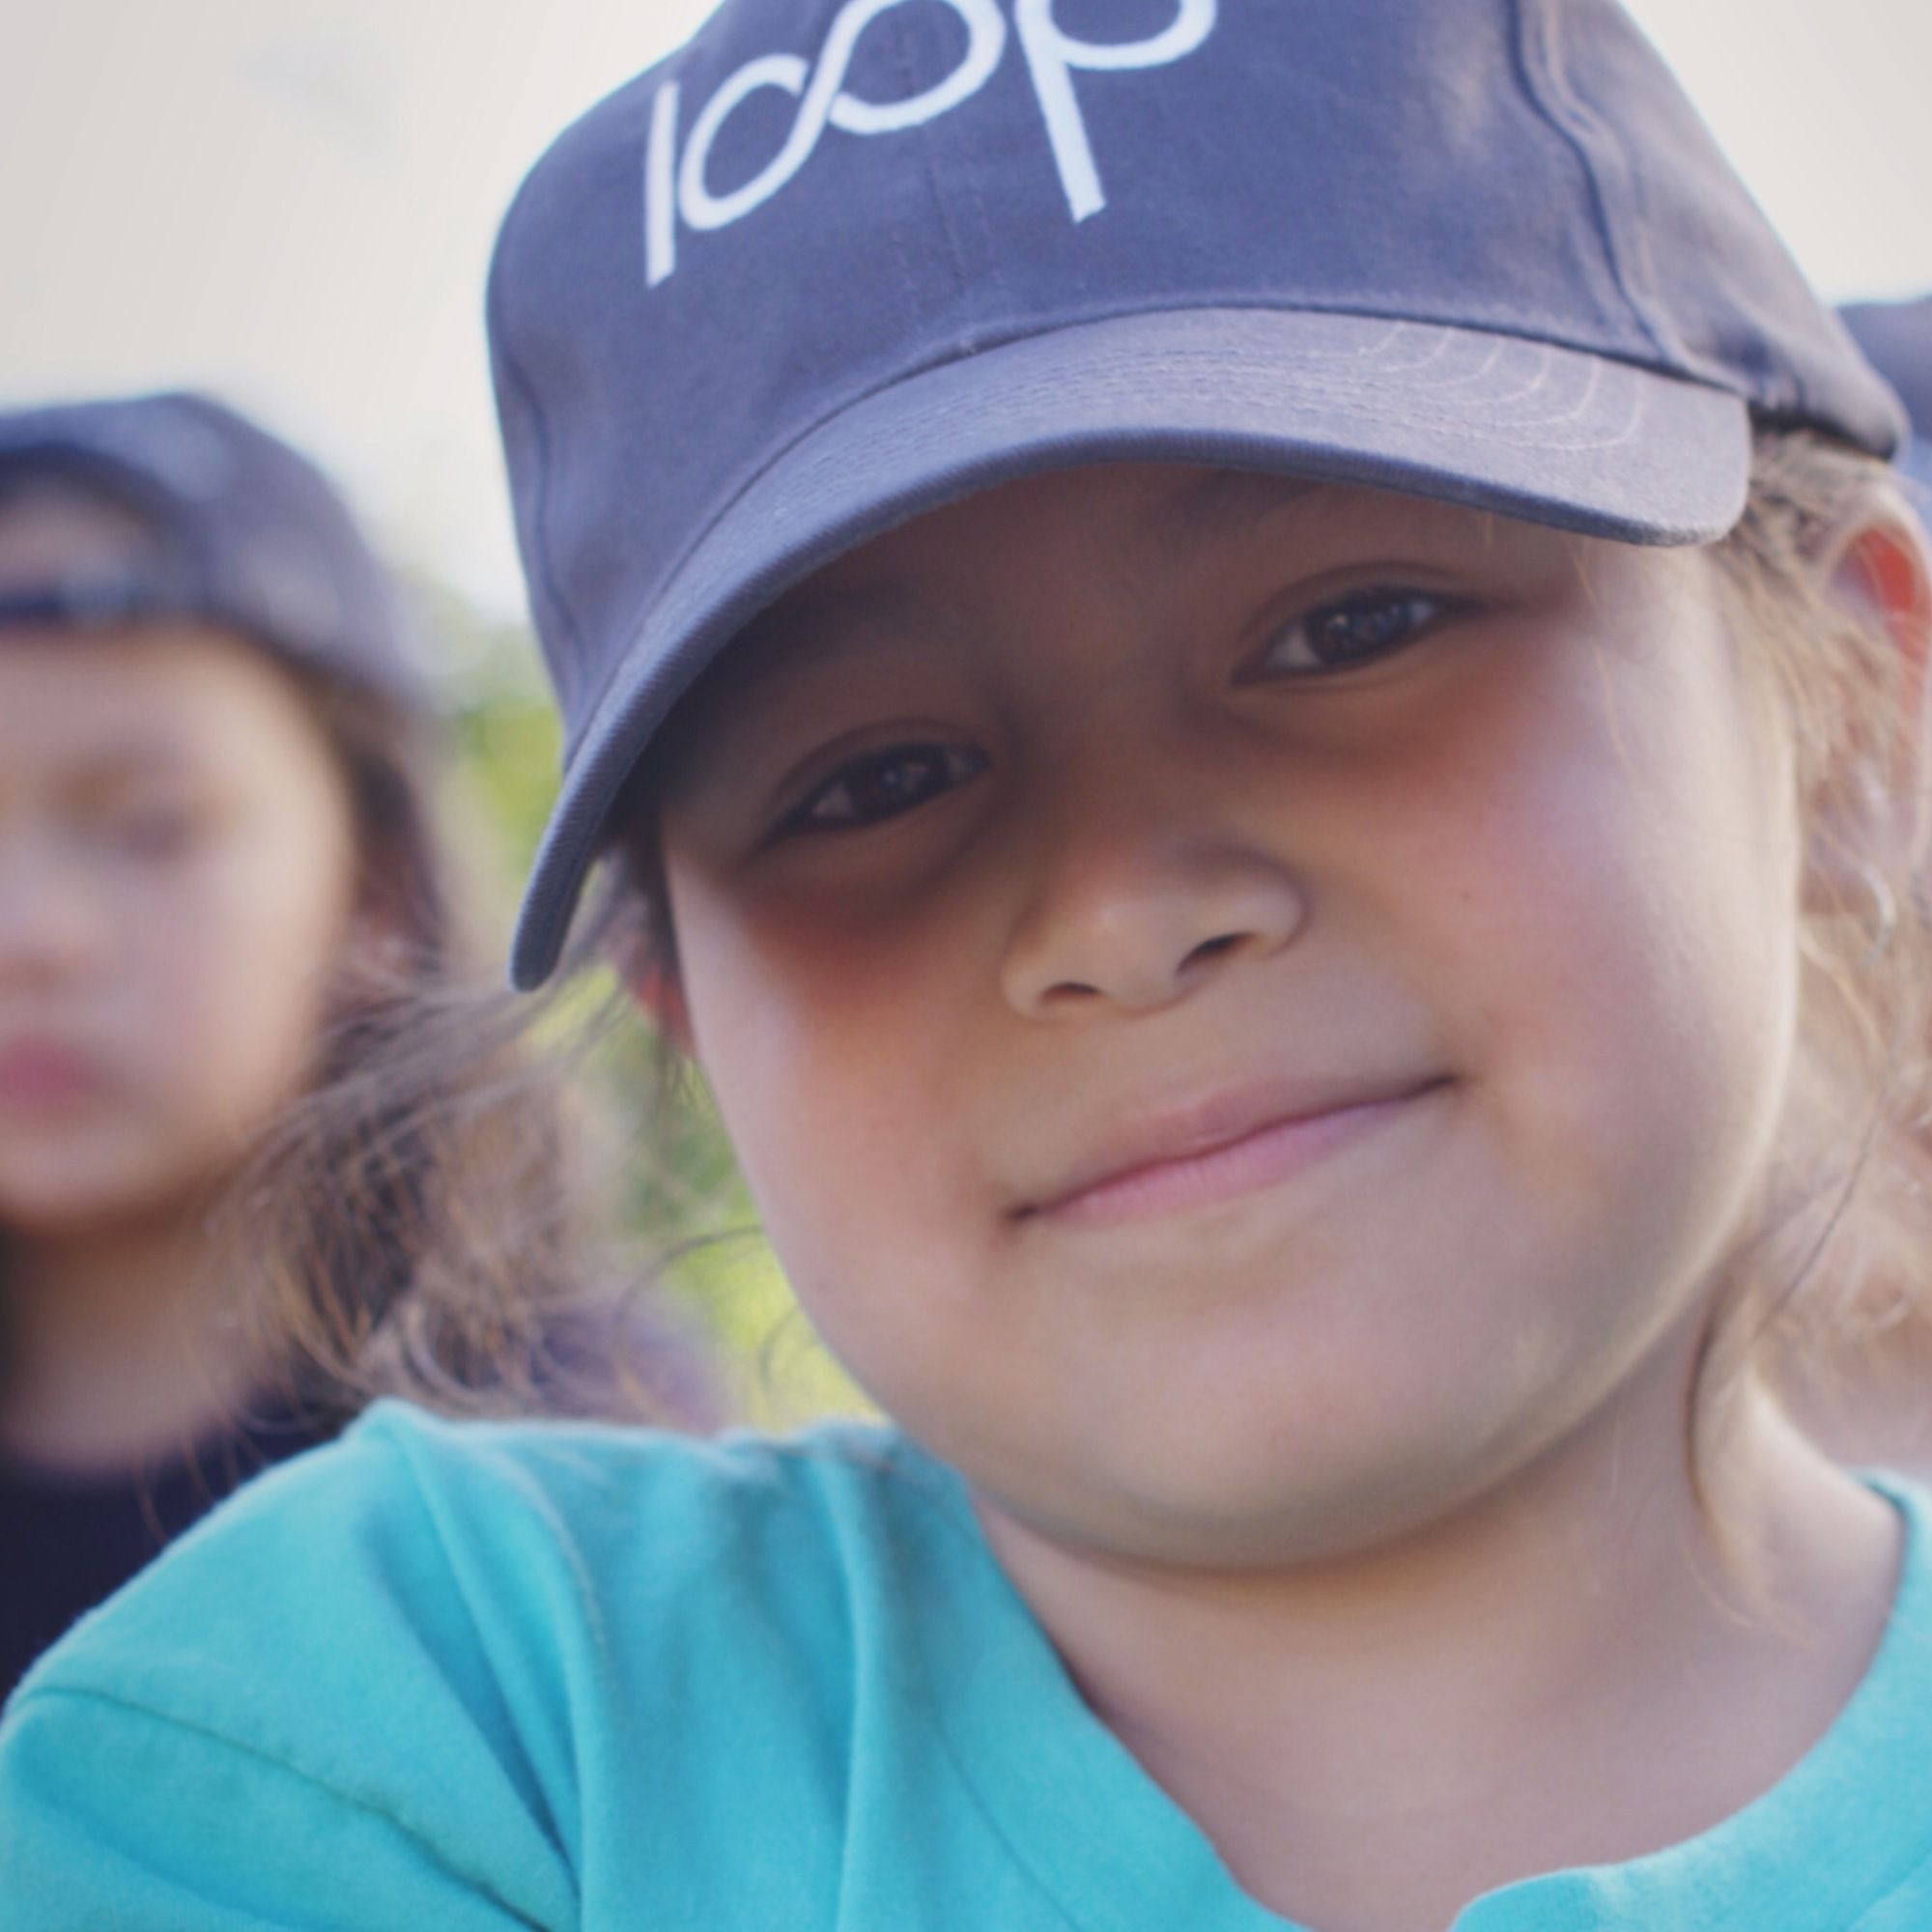 child smiling wearing Loop hat